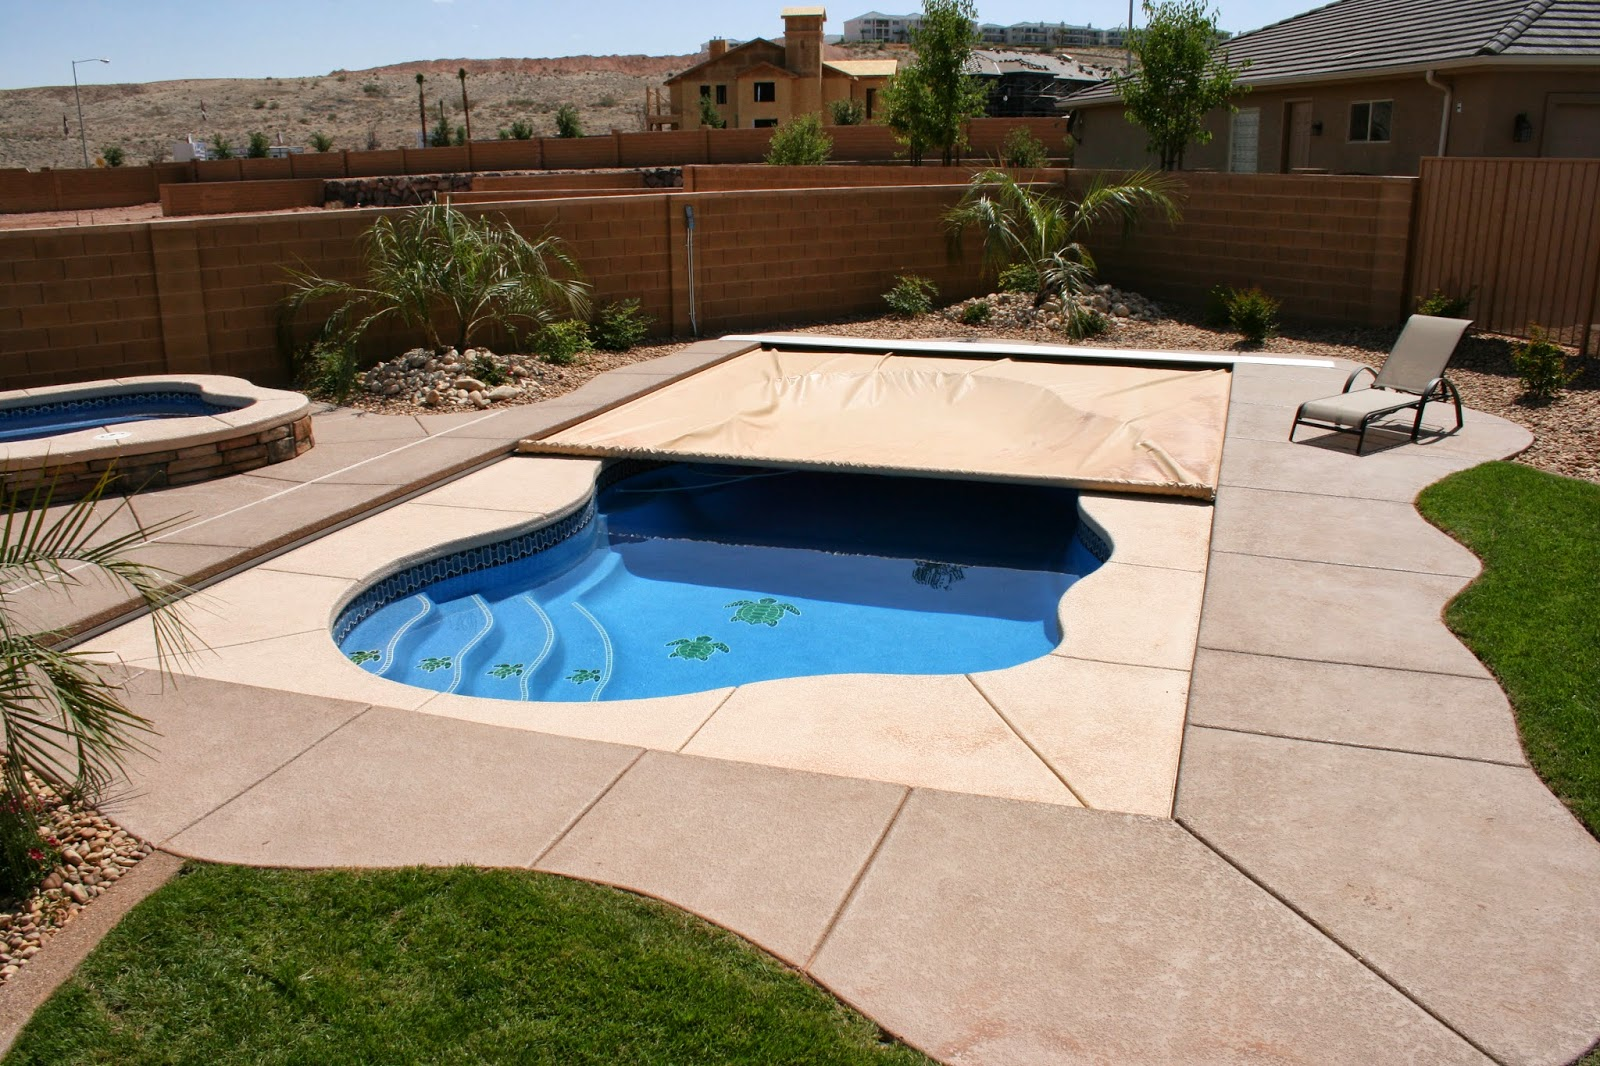 Jacuzzi Pool Covers Coverstar Safety Swimming Pool Covers For Automatic And